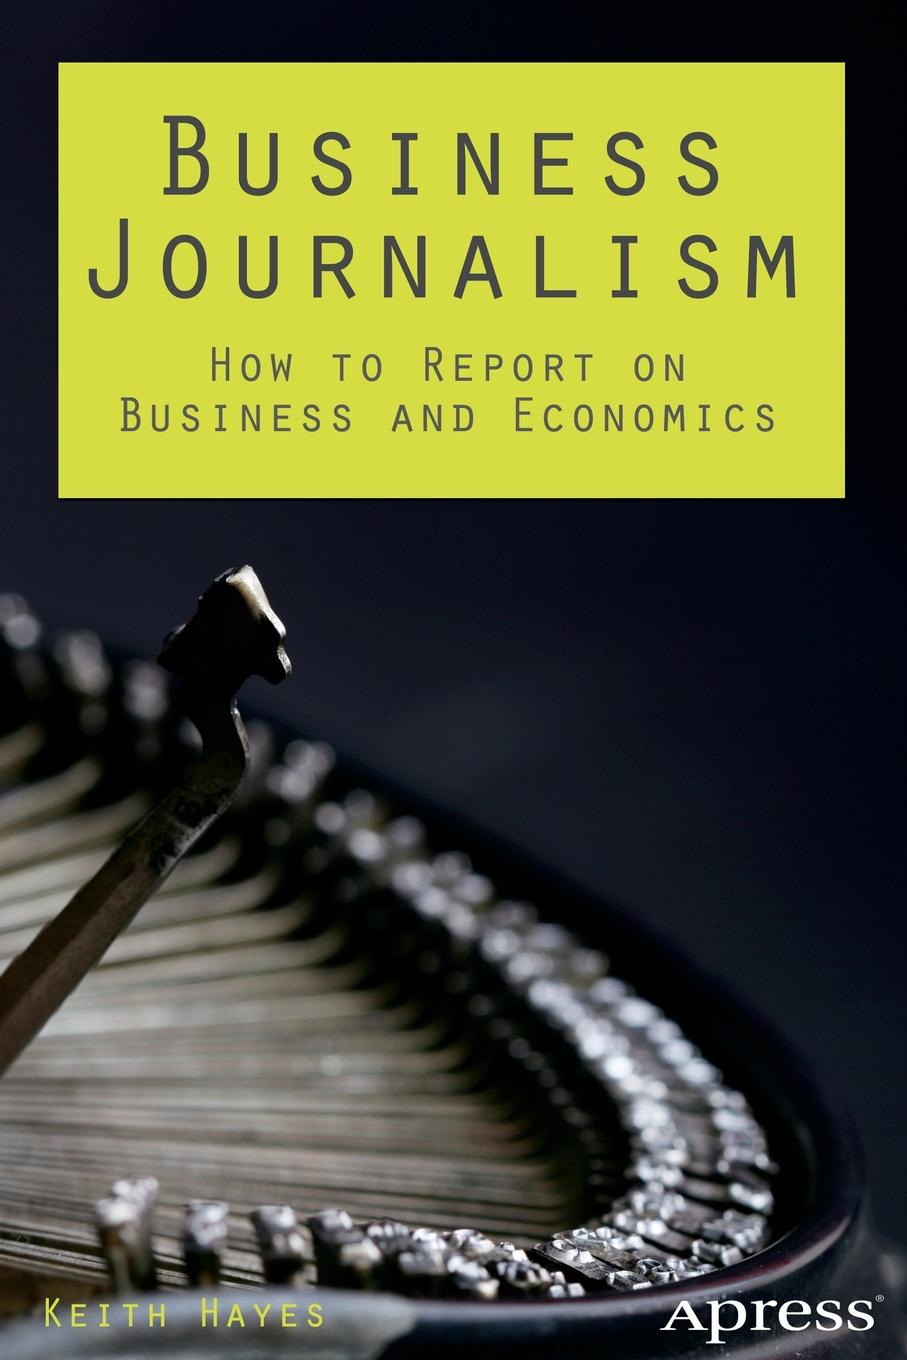 Keith Hayes Business Journalism. How to Report on and Economics